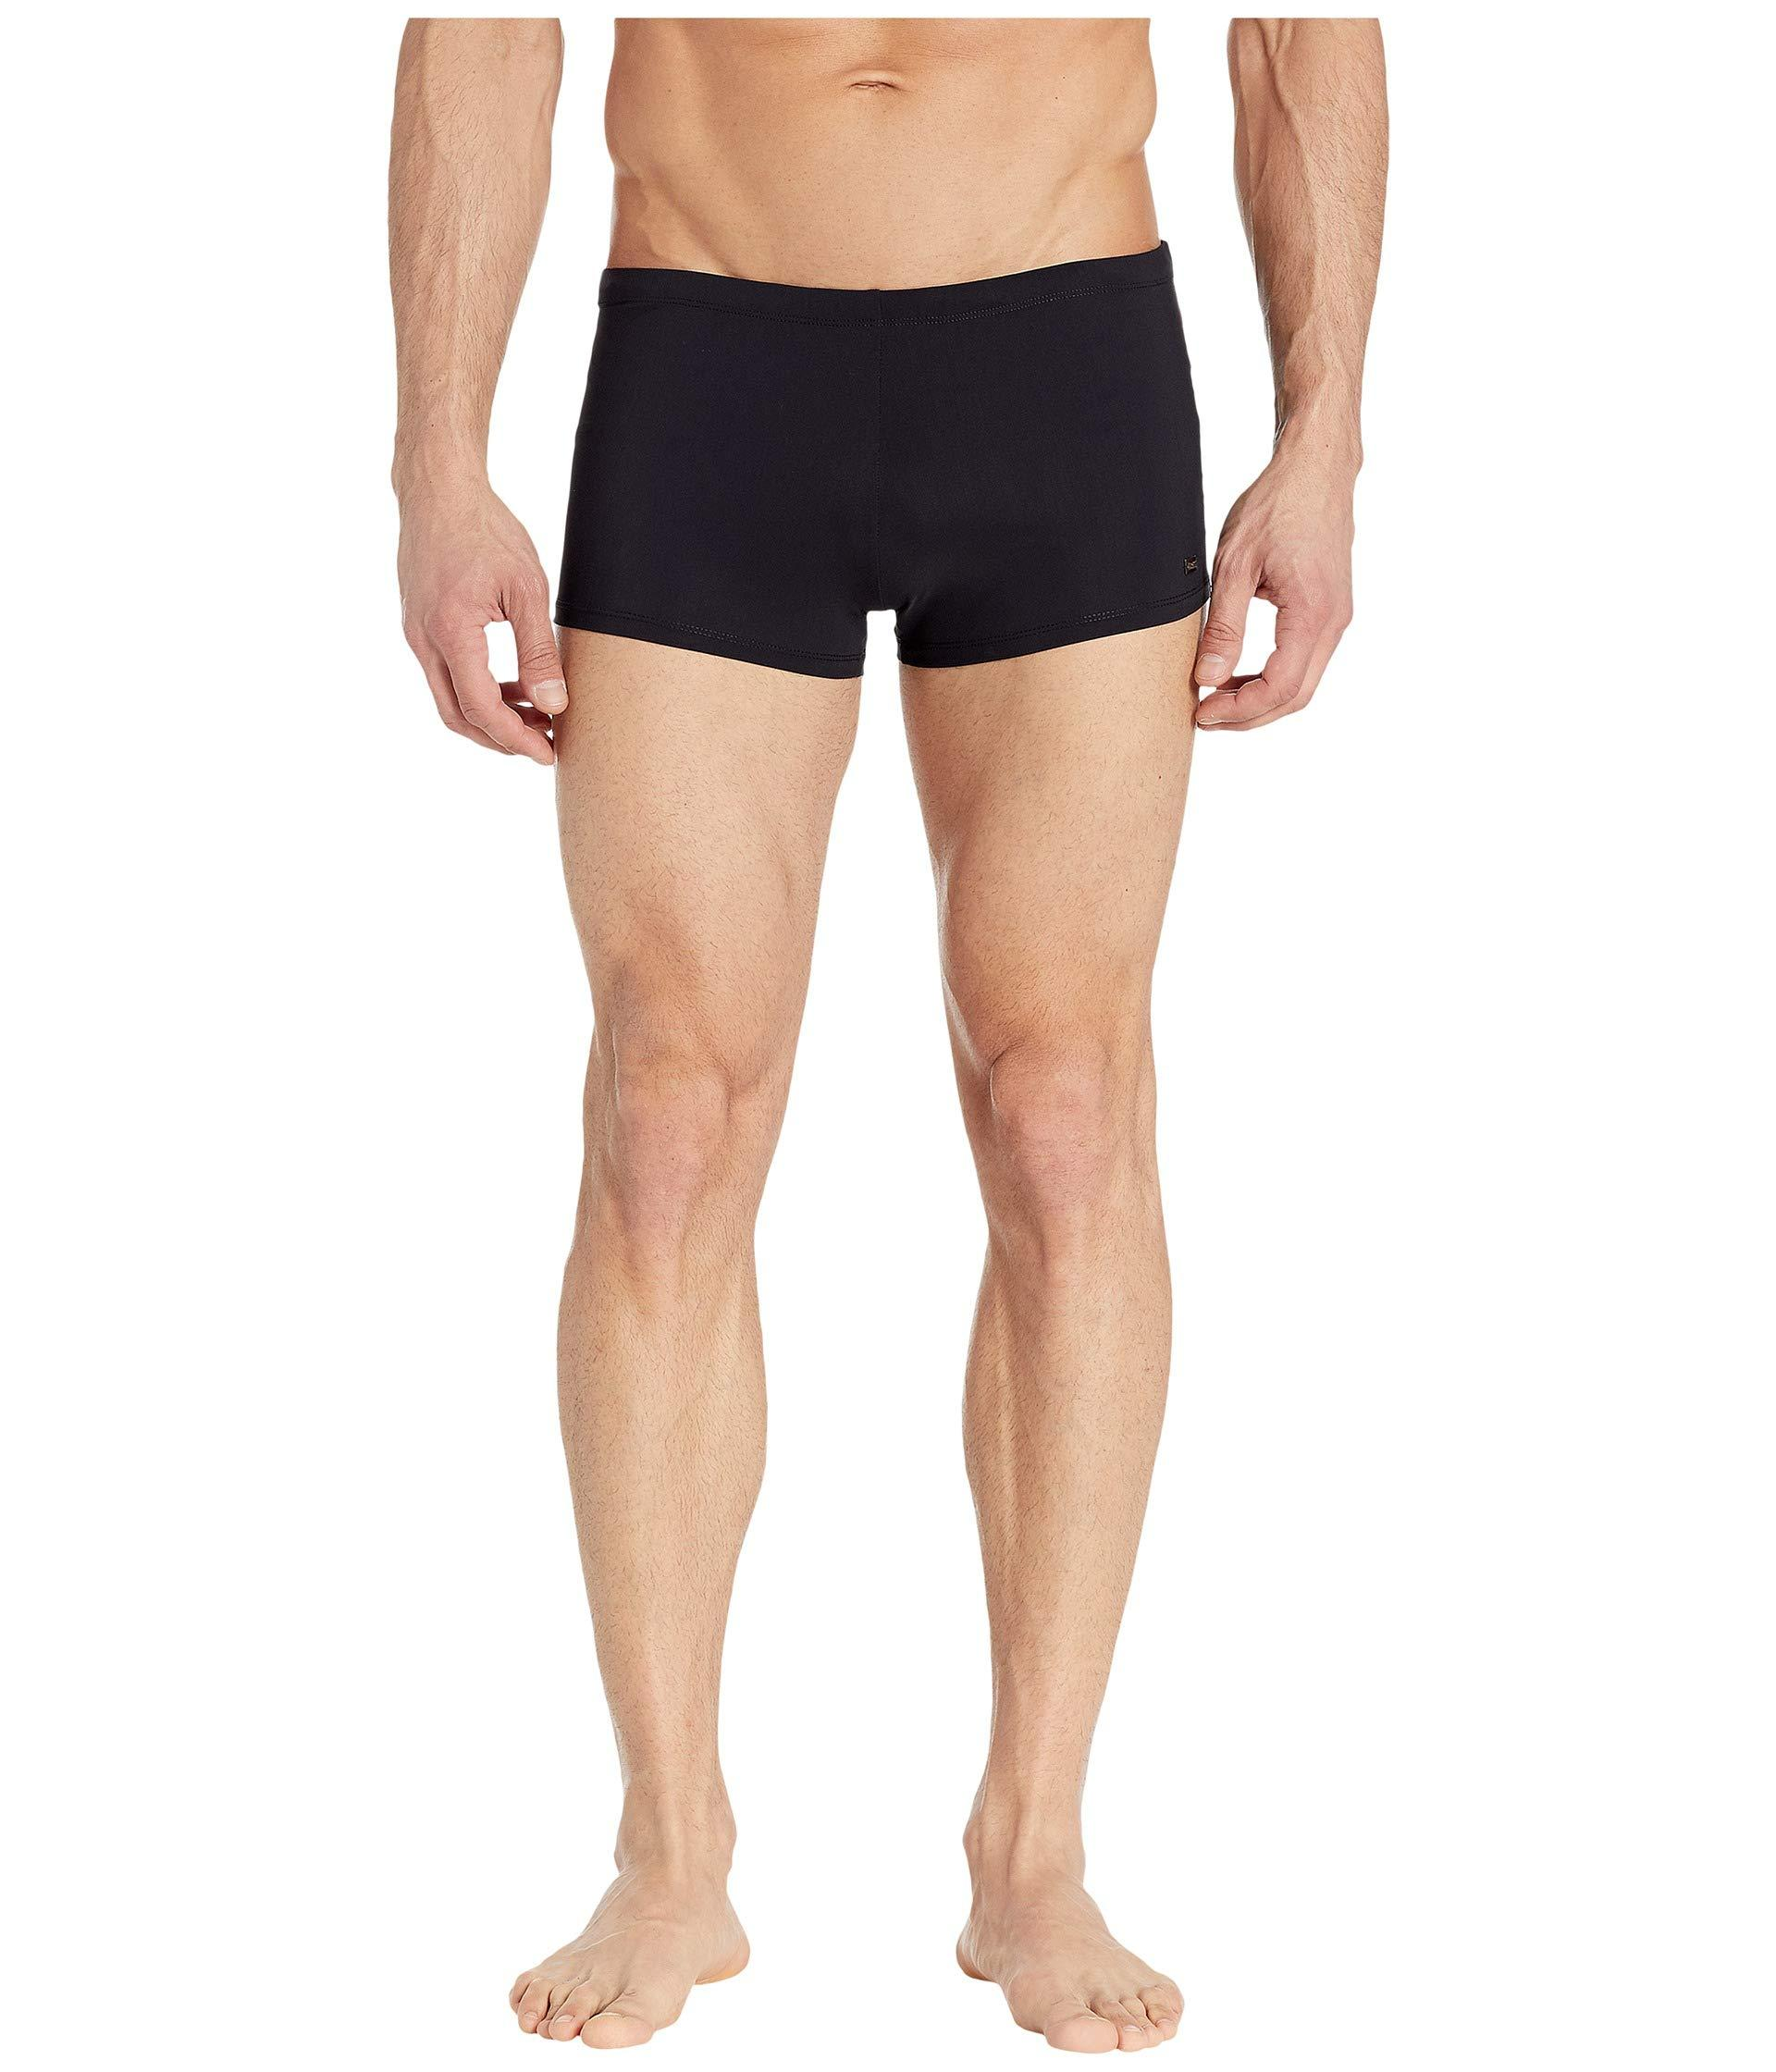 eb61e7172a Lyst - BOSS Oyster Swim Trunks (black) Men's Swimwear in Black for Men